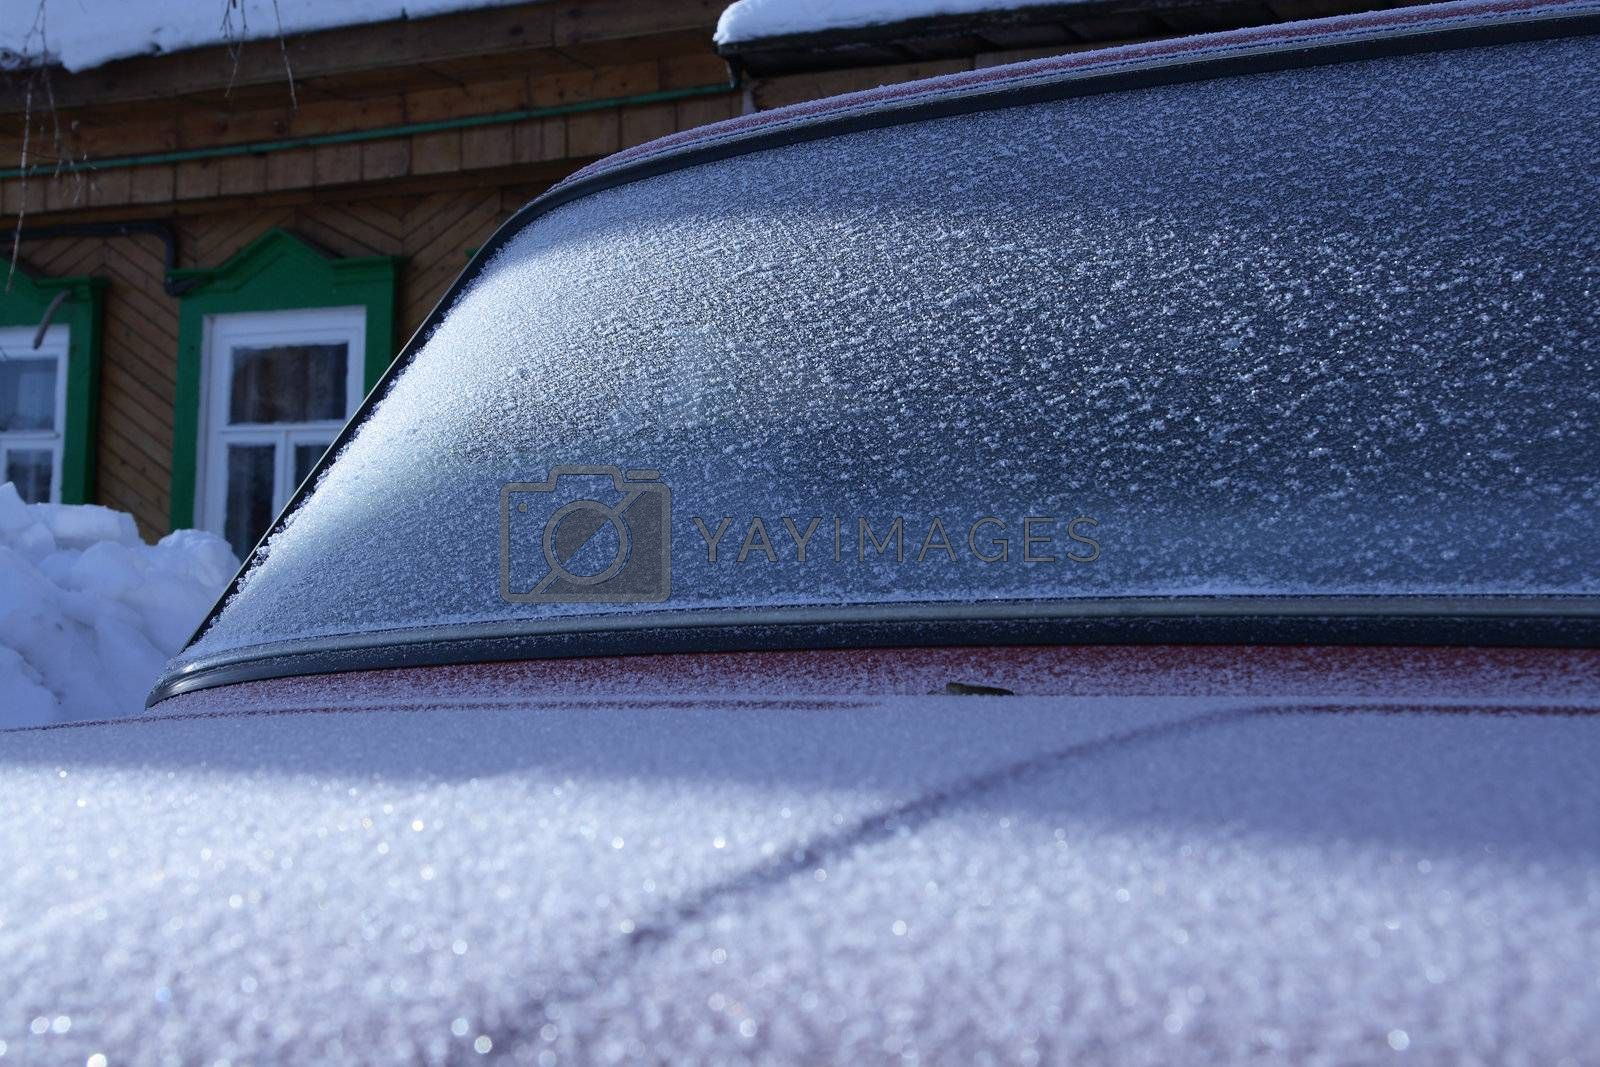 The car covered with frost, against the old wooden house. by mzh25